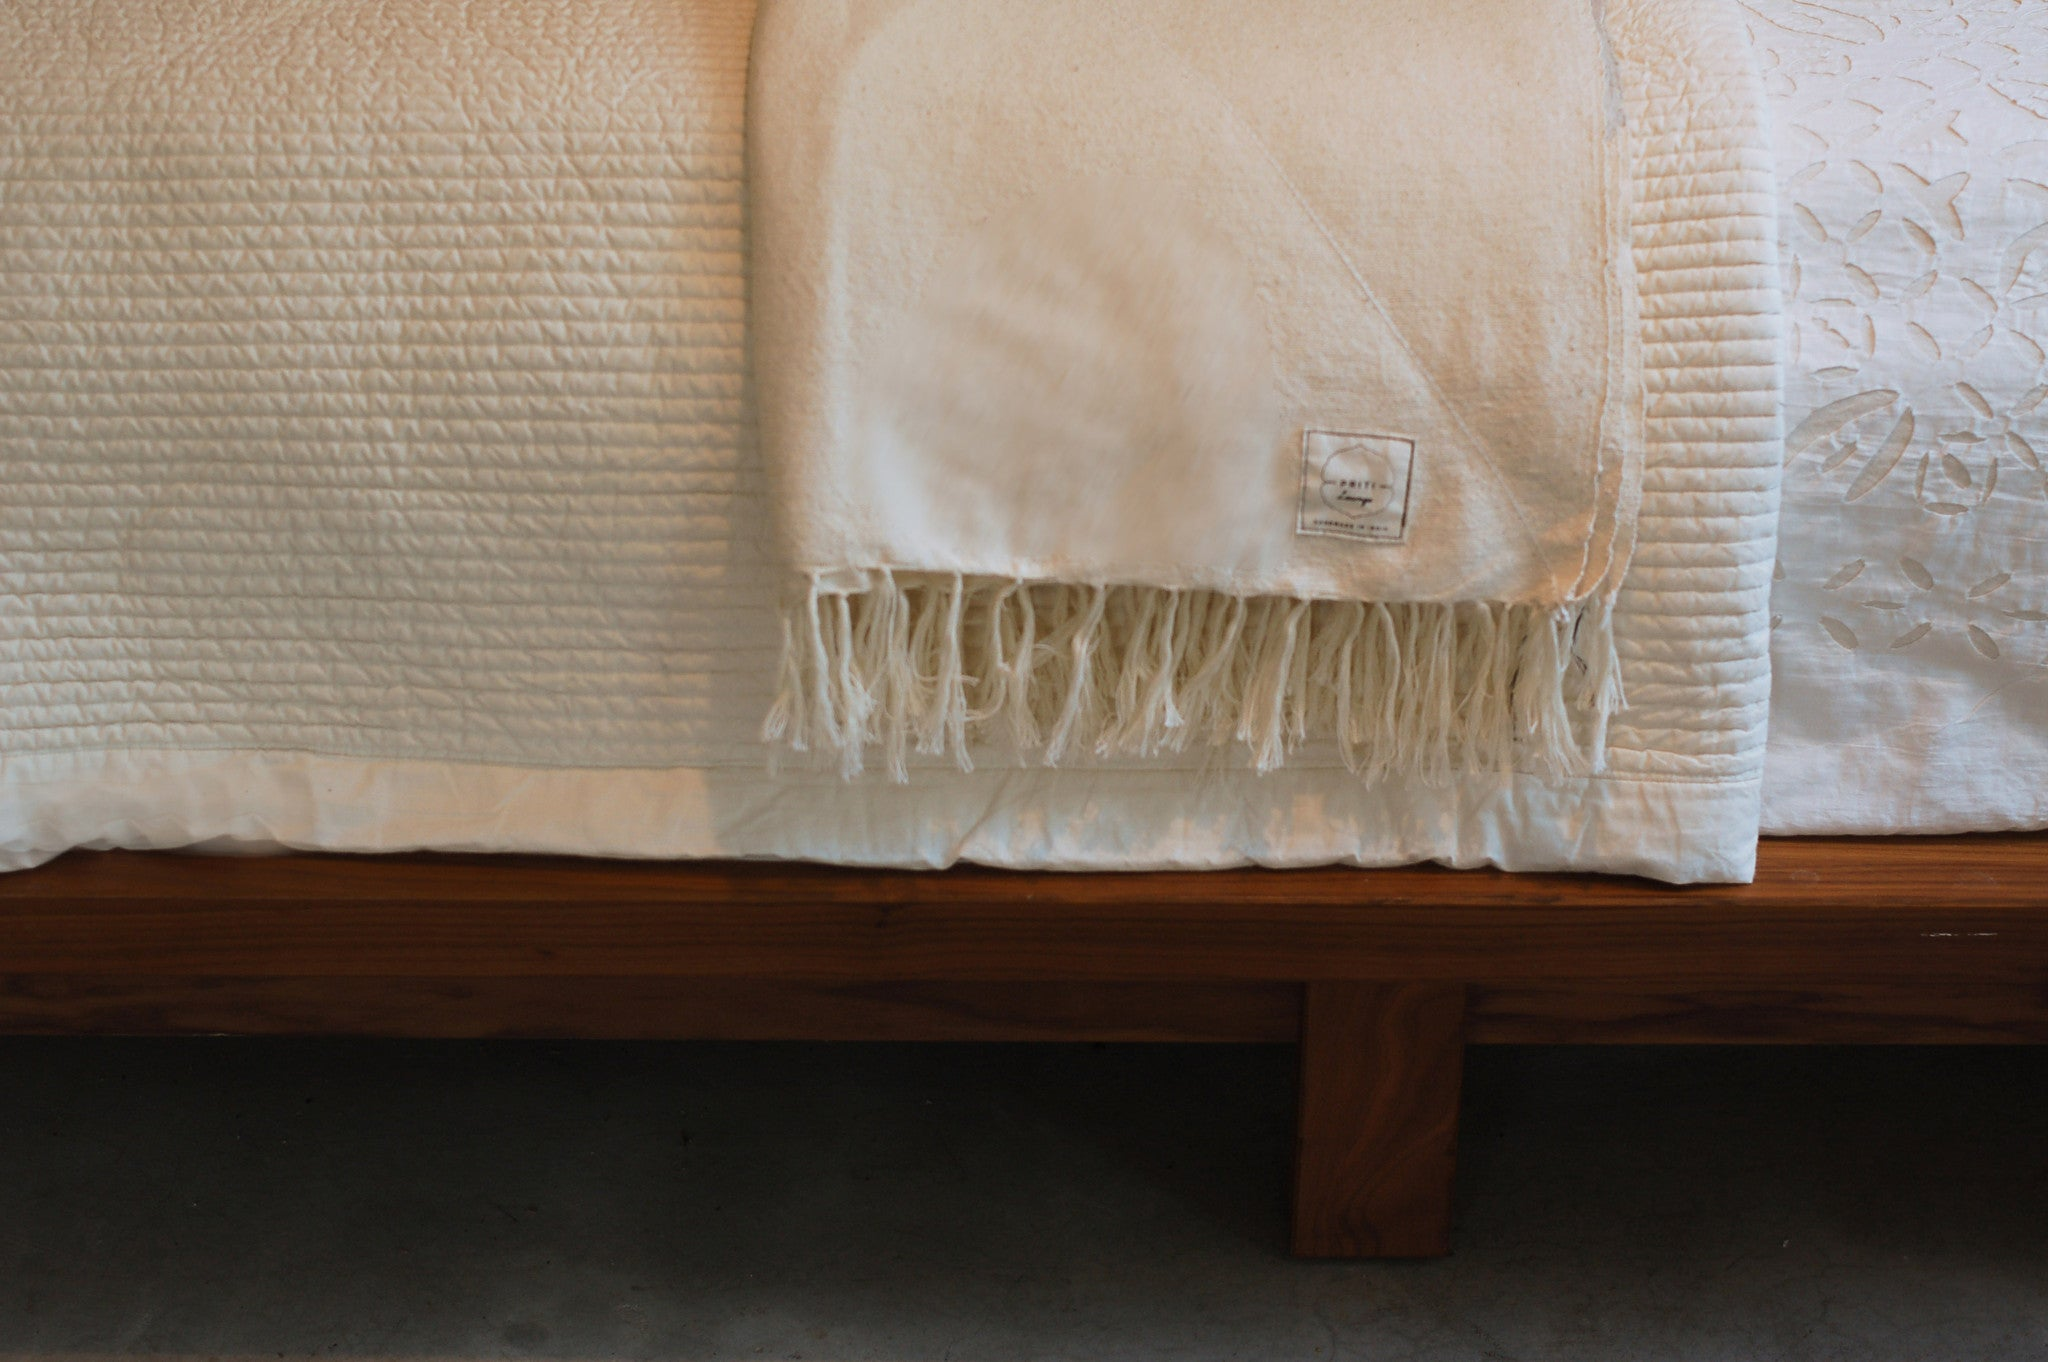 Handloomed, 100% cotton Level 4 sanctuary blanket. color : natural with light gray accent